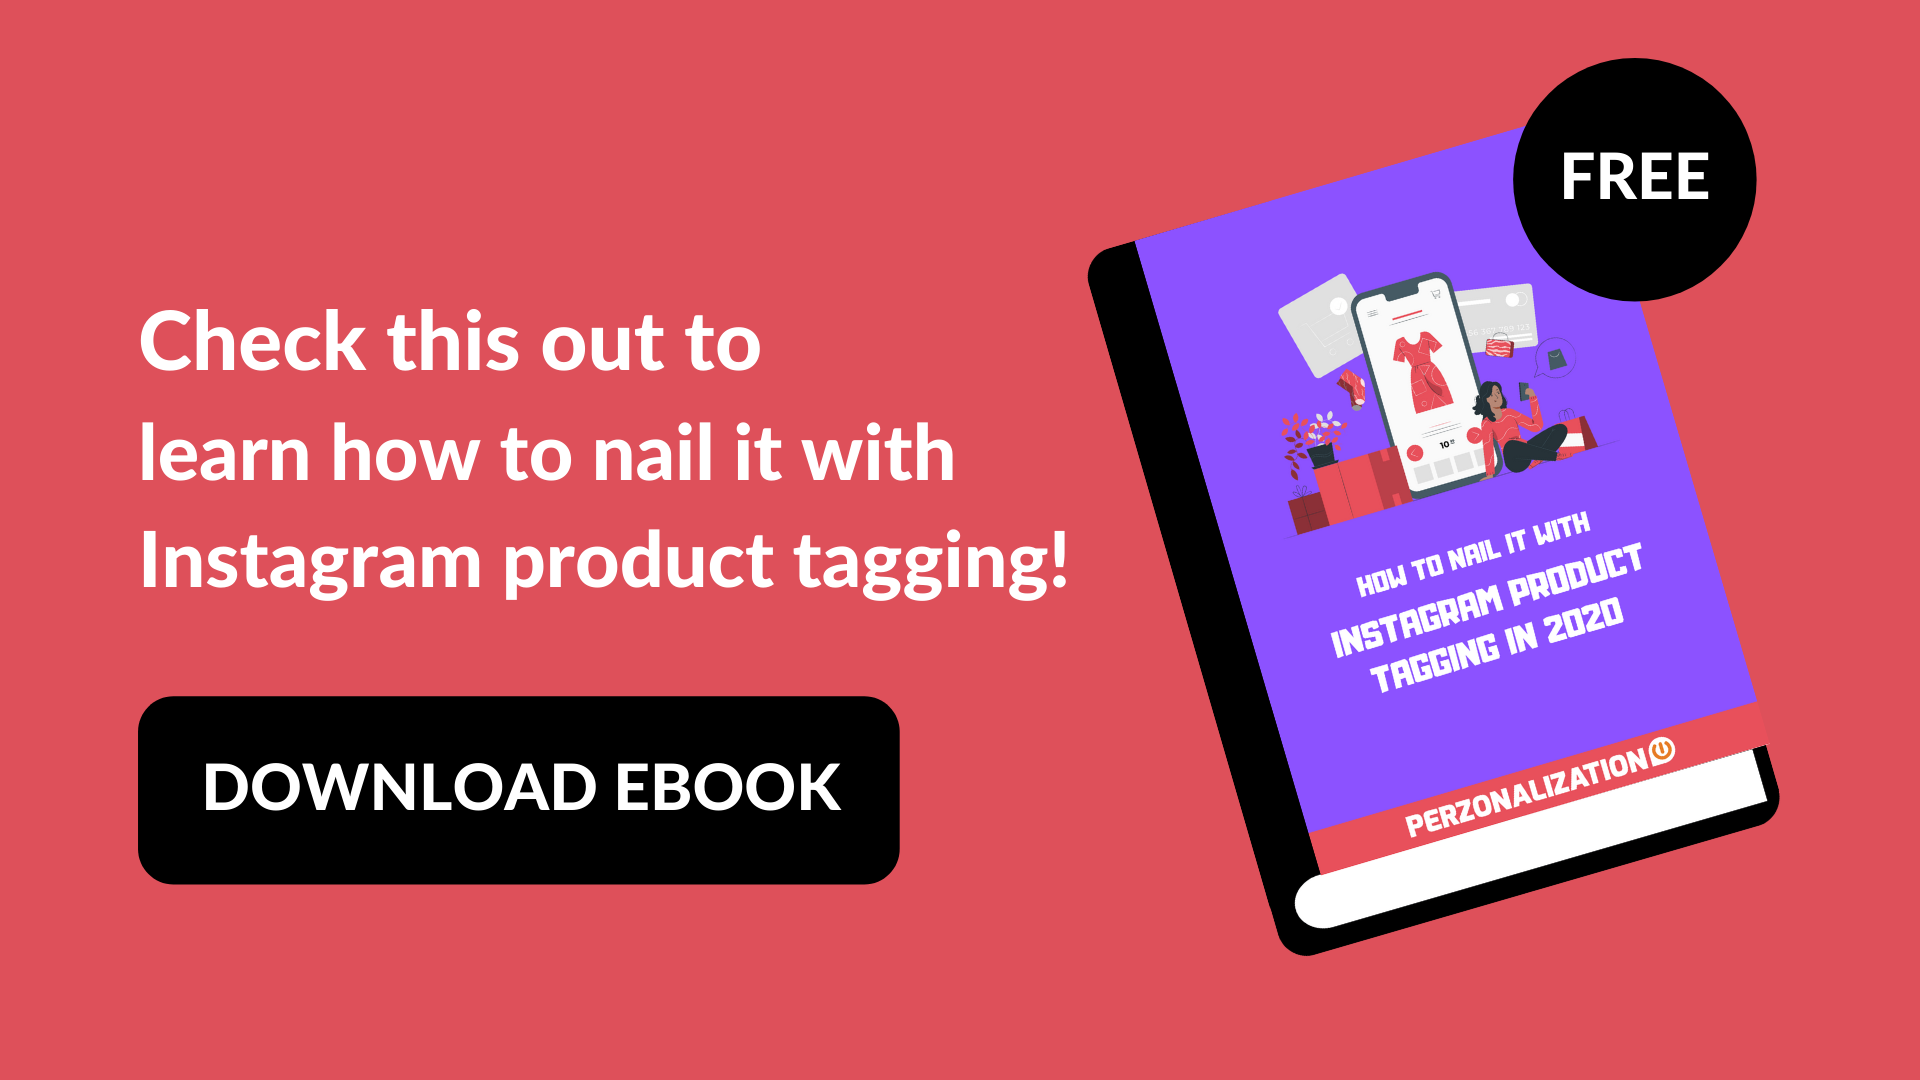 Instagram product tagging gives you the opportunity to go creative with your product tags and Instagram Shoppable posts to reach out to your consumer base. Find more in this free eBook!